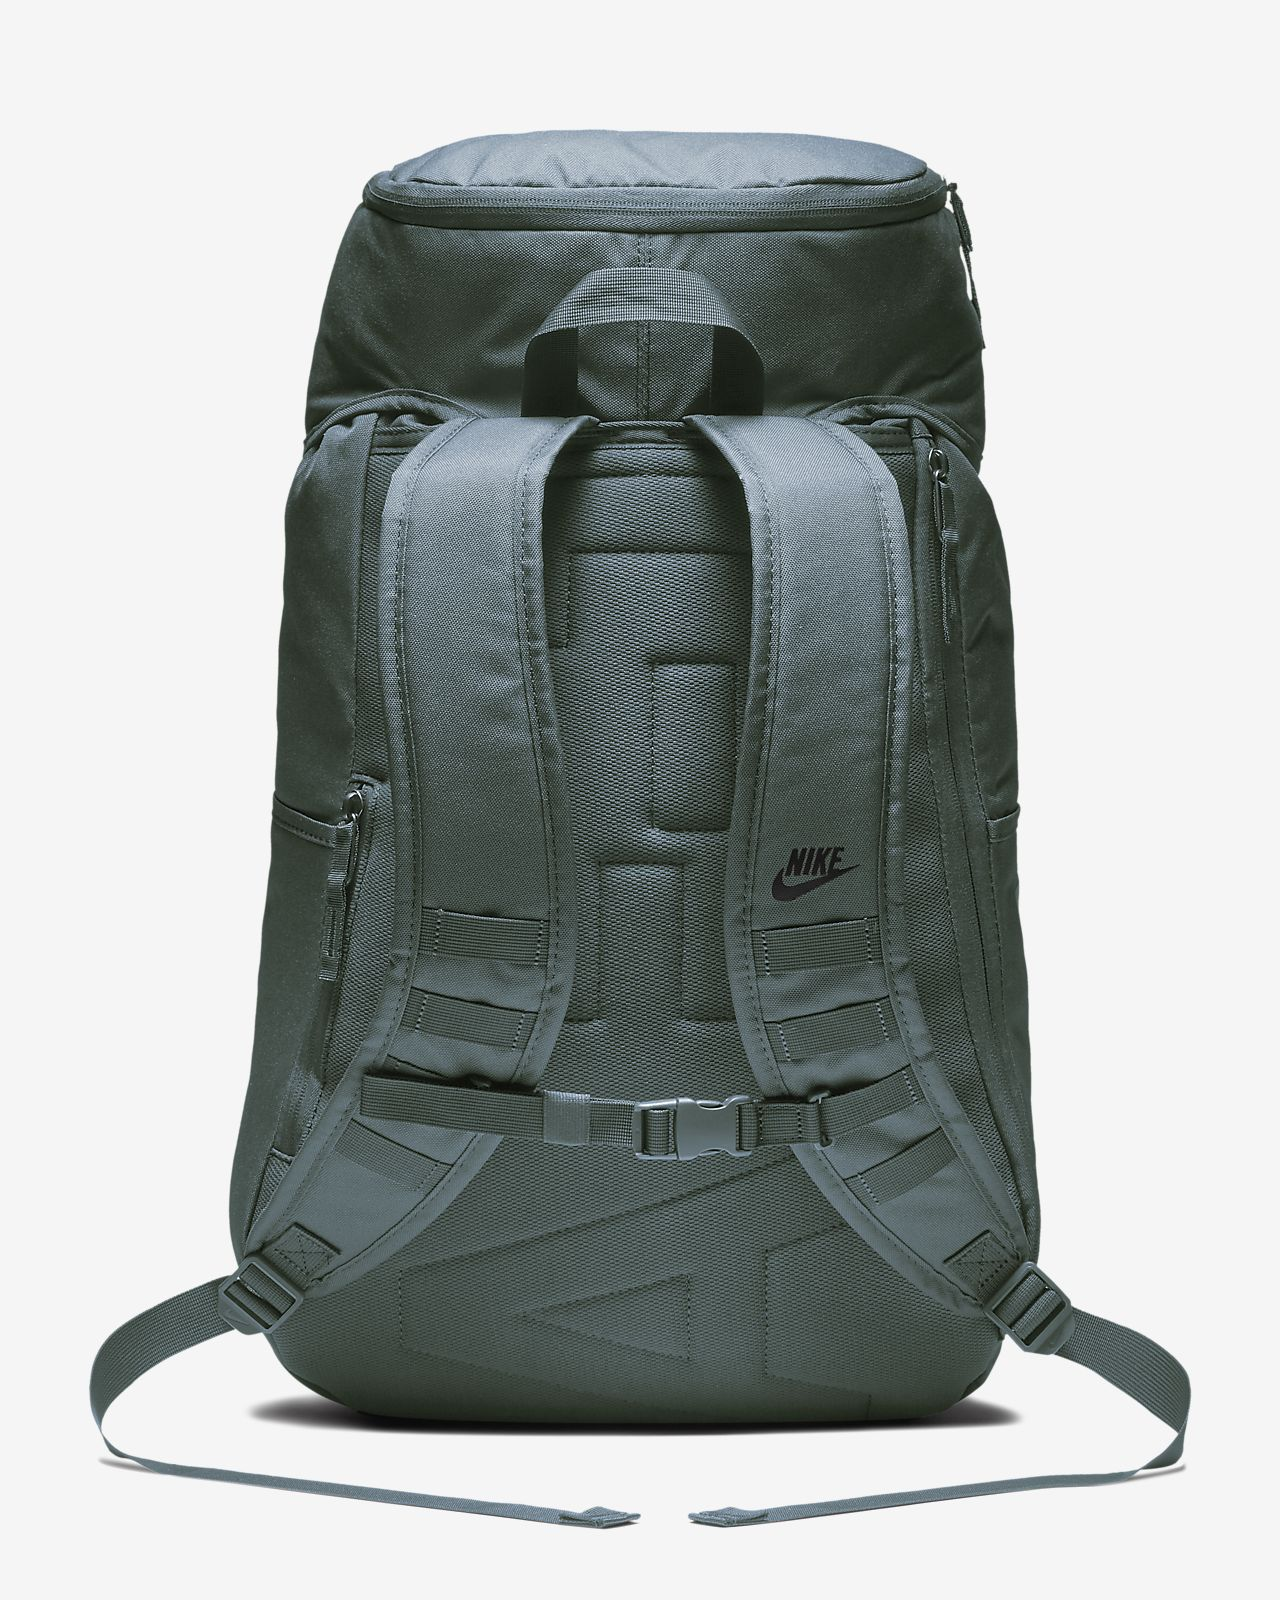 50ee5d6b97 Low Resolution Nike Sportswear AF1 Backpack Nike Sportswear AF1 Backpack